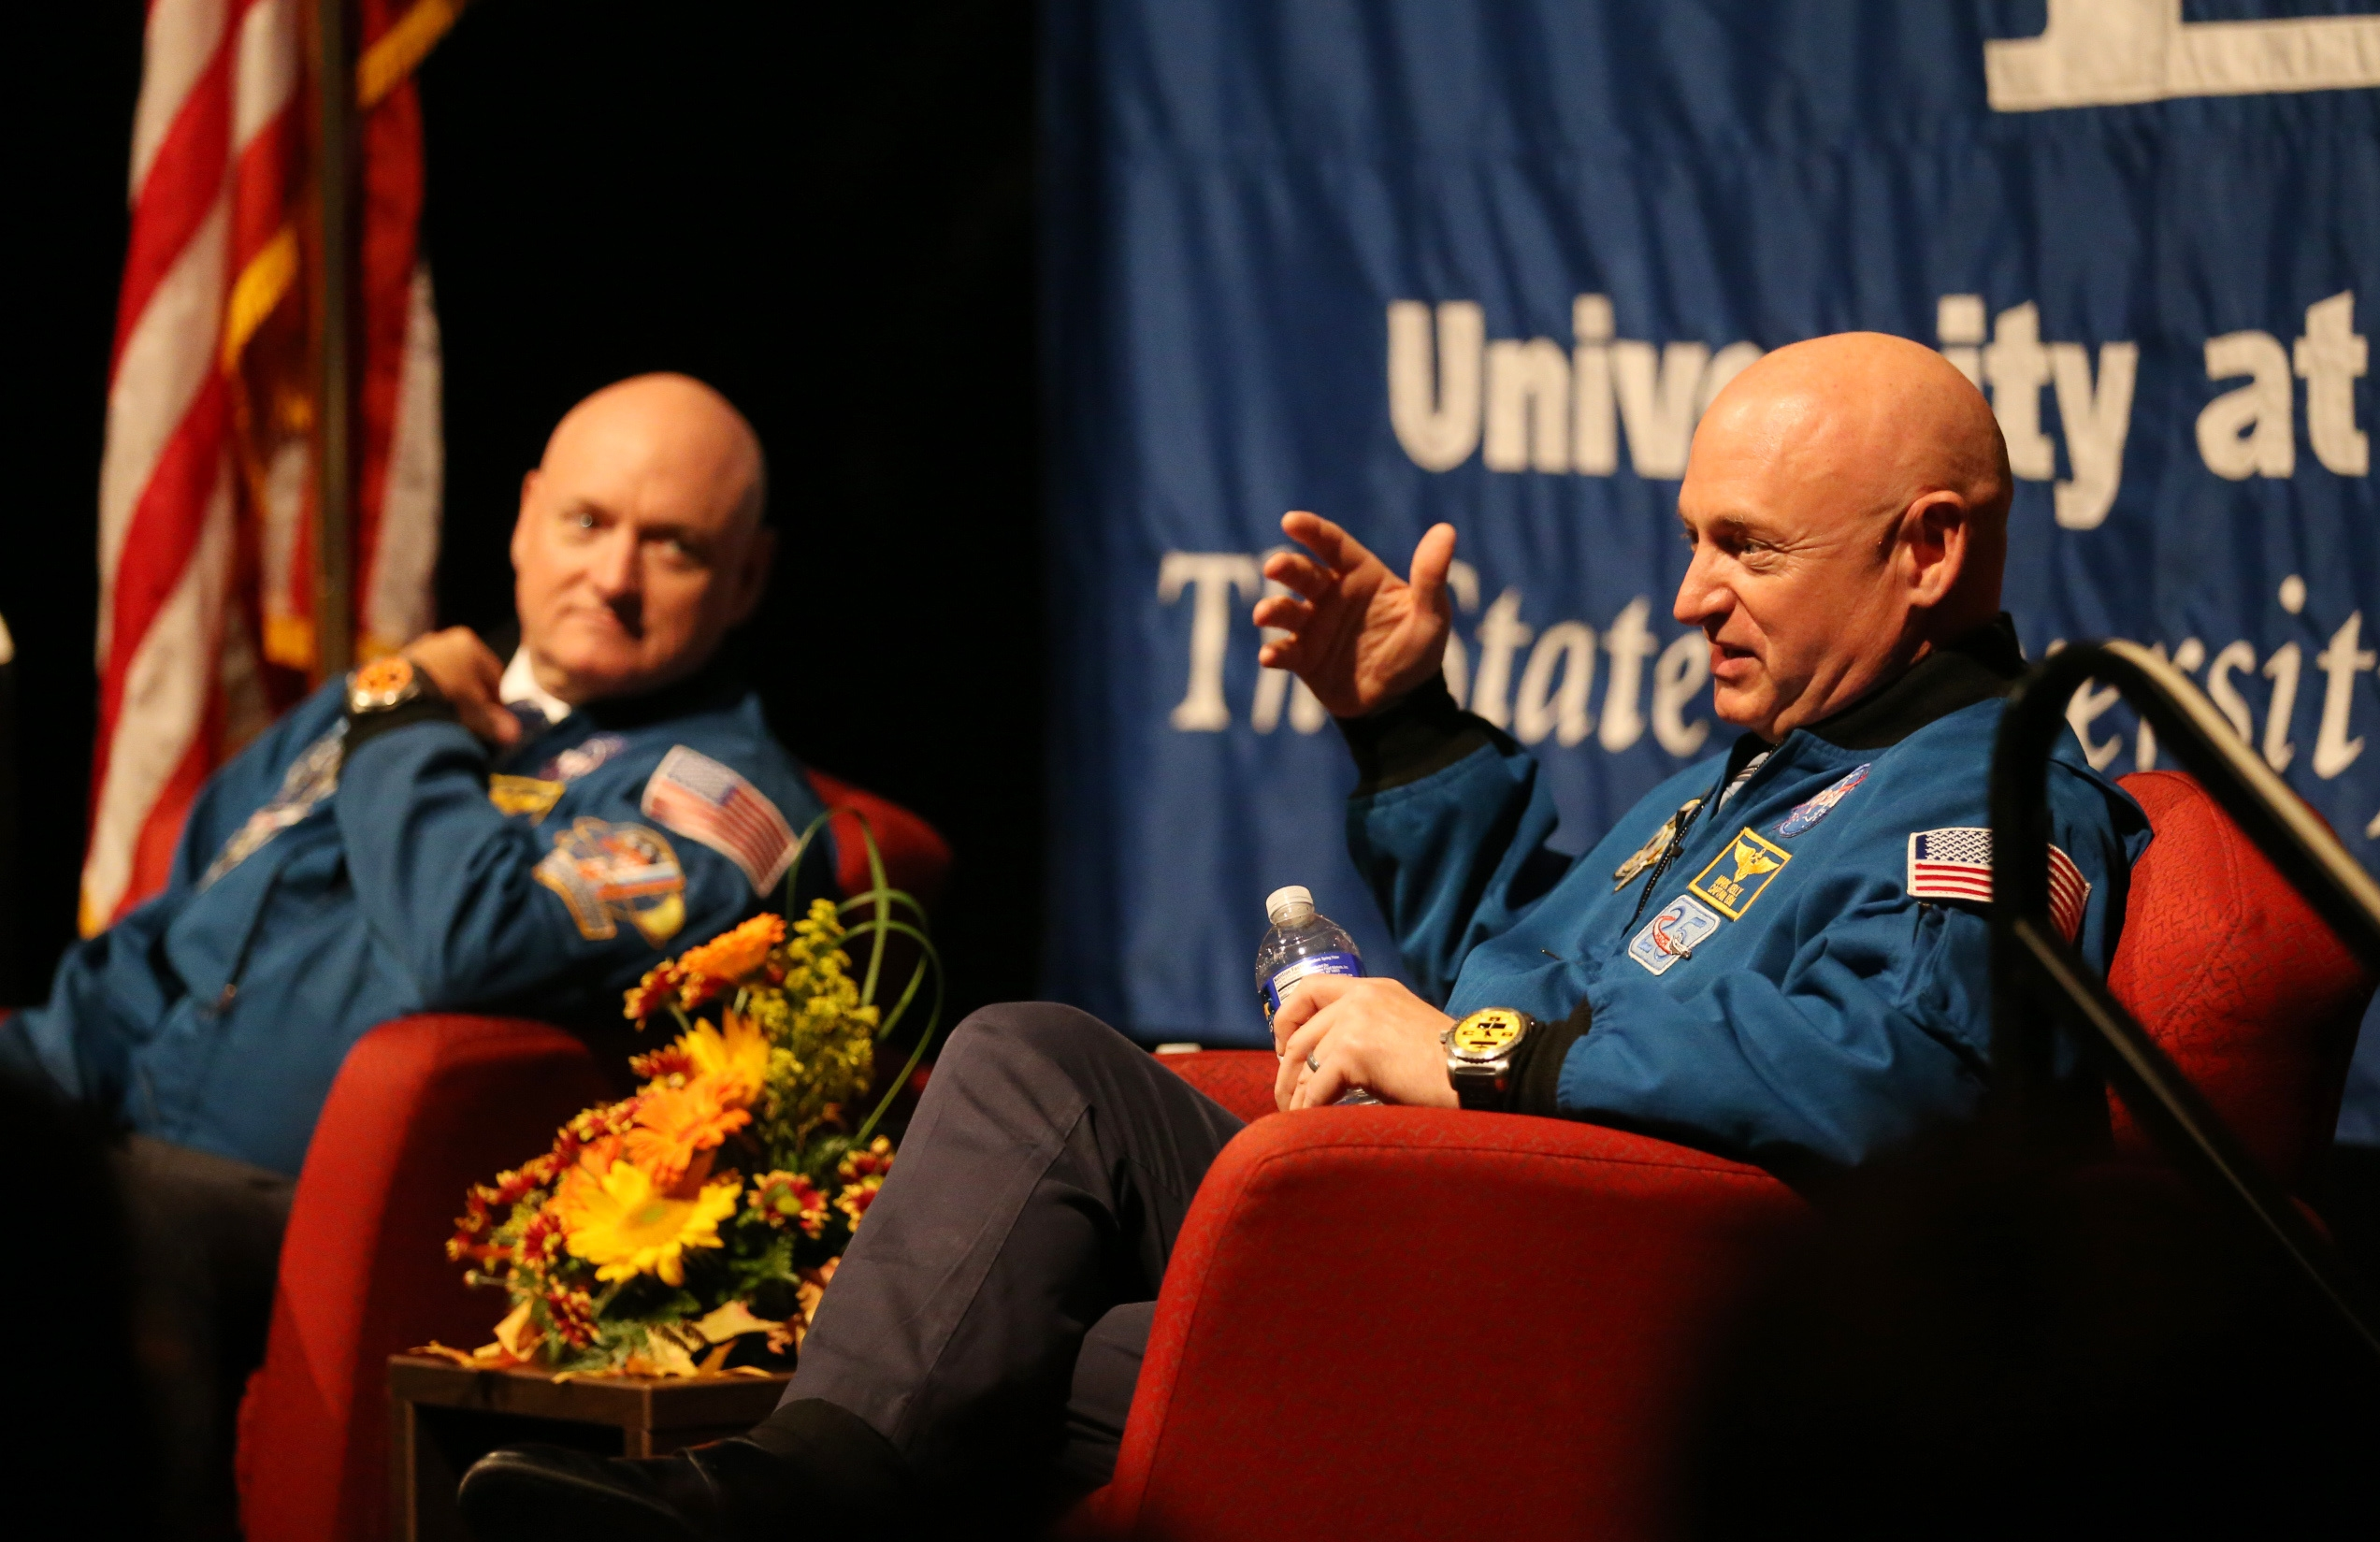 Twin astronauts Scott, left, and Mark Kelly, speaking Thursday after- noon at the University at Buffalo, were the subject of a NASA experiment to test the effects of long-term space travel on humans. Scott spent 340 days in space, while Mark stayed on Earth as the control subject.